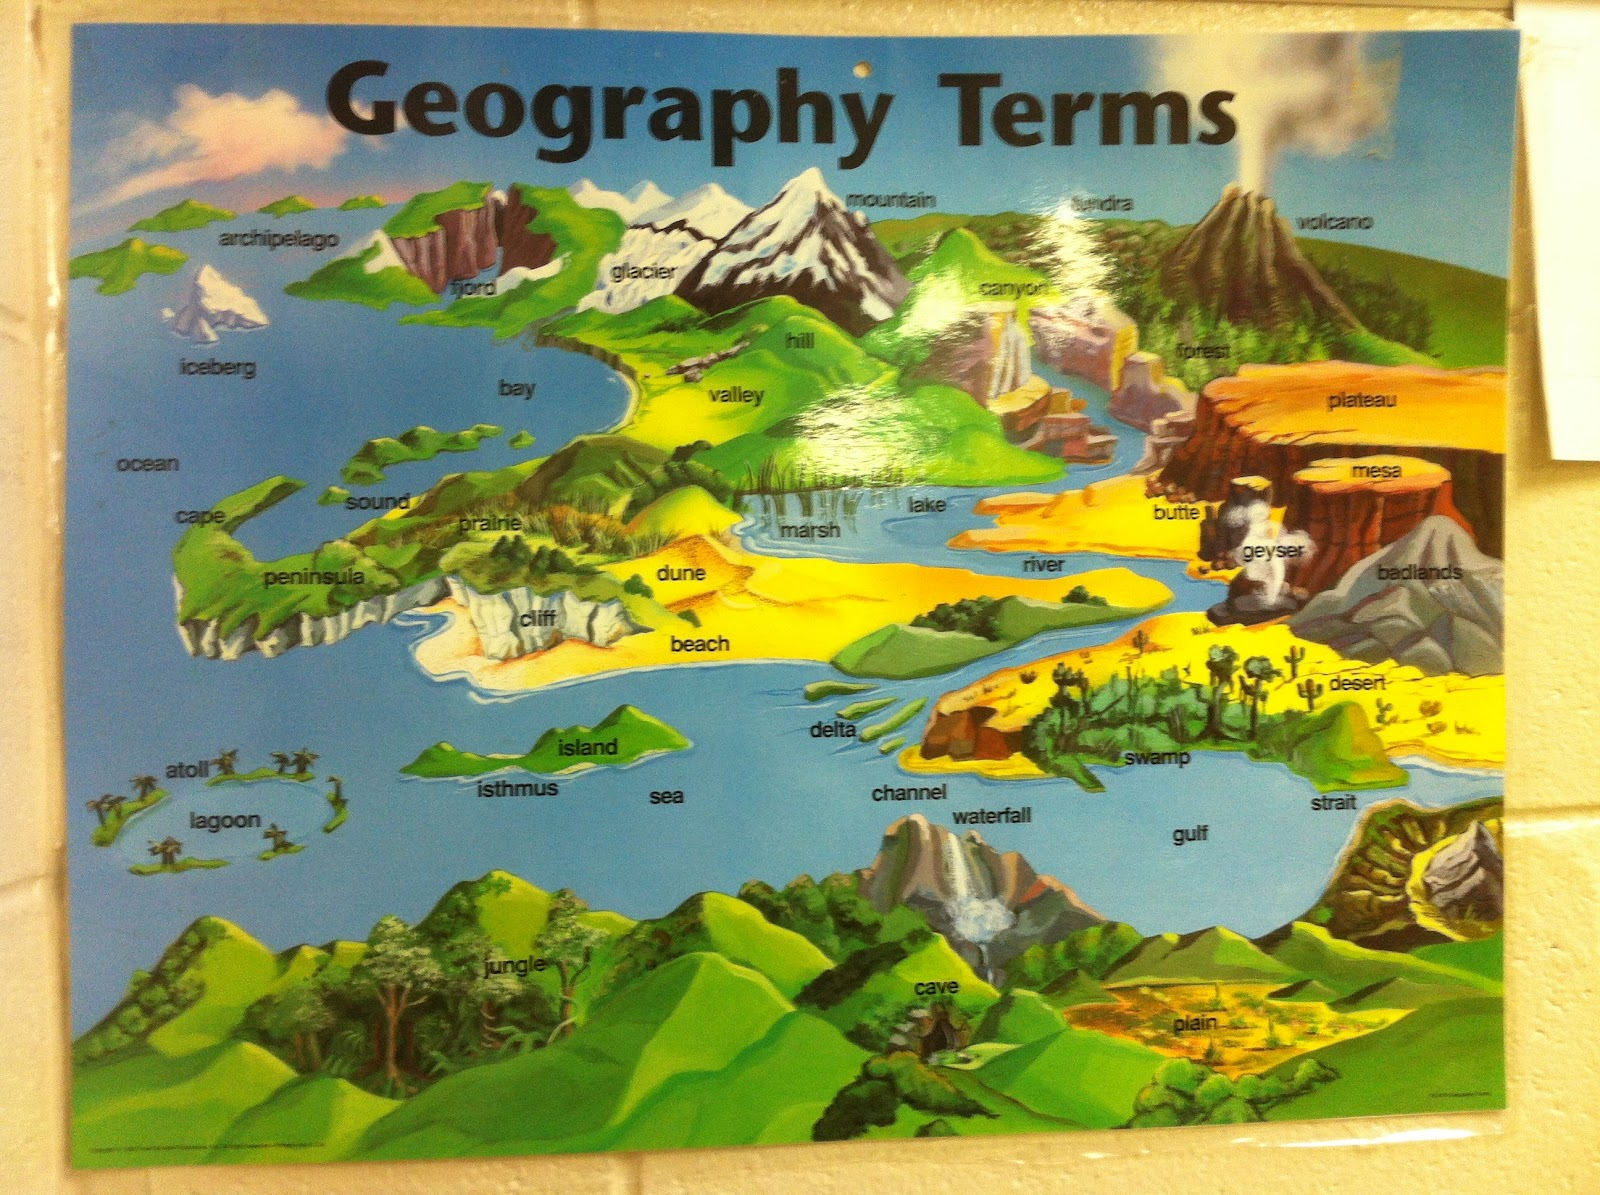 We hand picked all map language arts photos